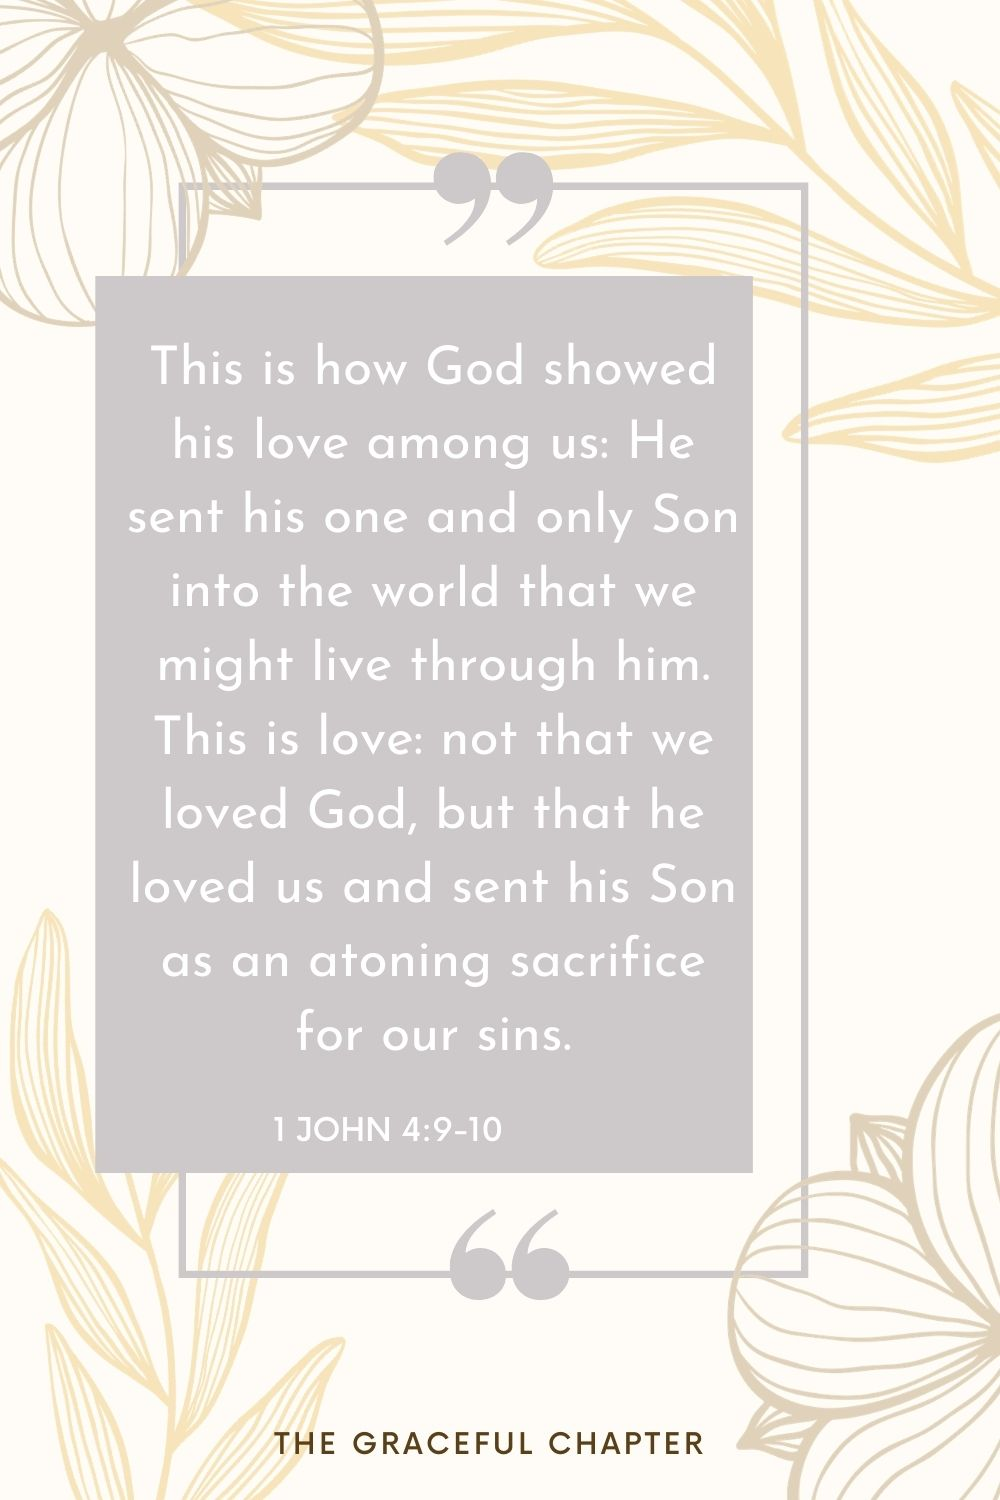 This is love: not that we loved God, but that he loved us and sent his Son as an atoning sacrifice for our sins. 1 John 4:9-10